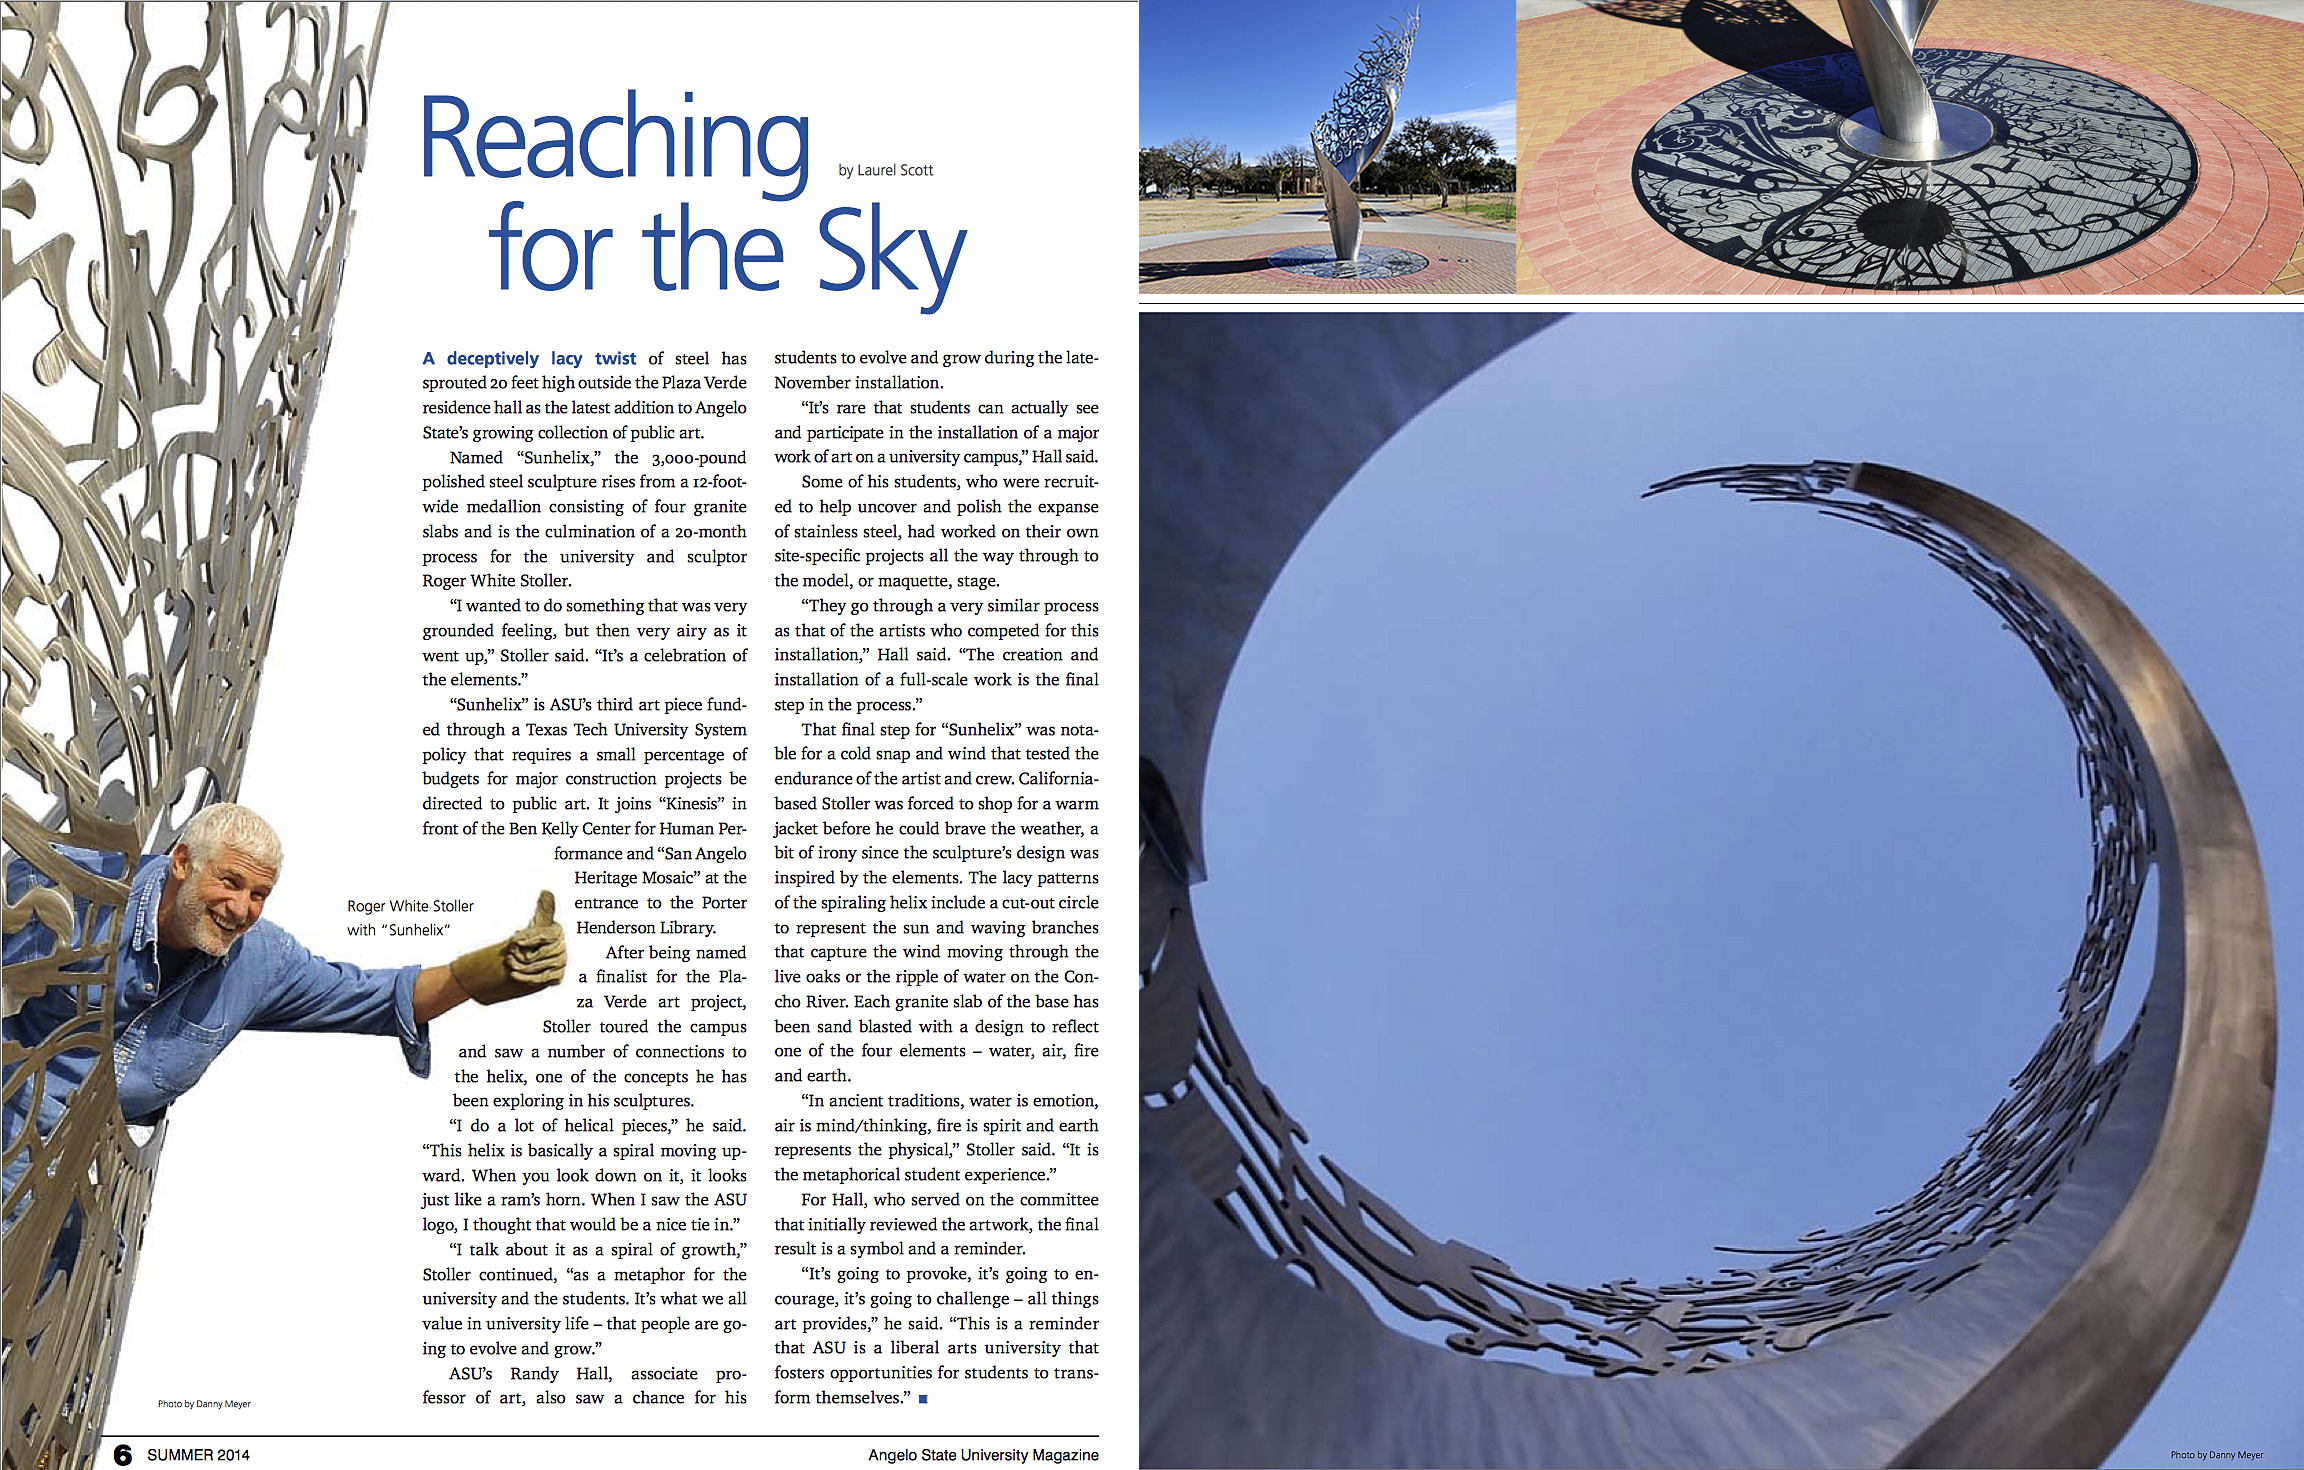 Reaching for the Sky article